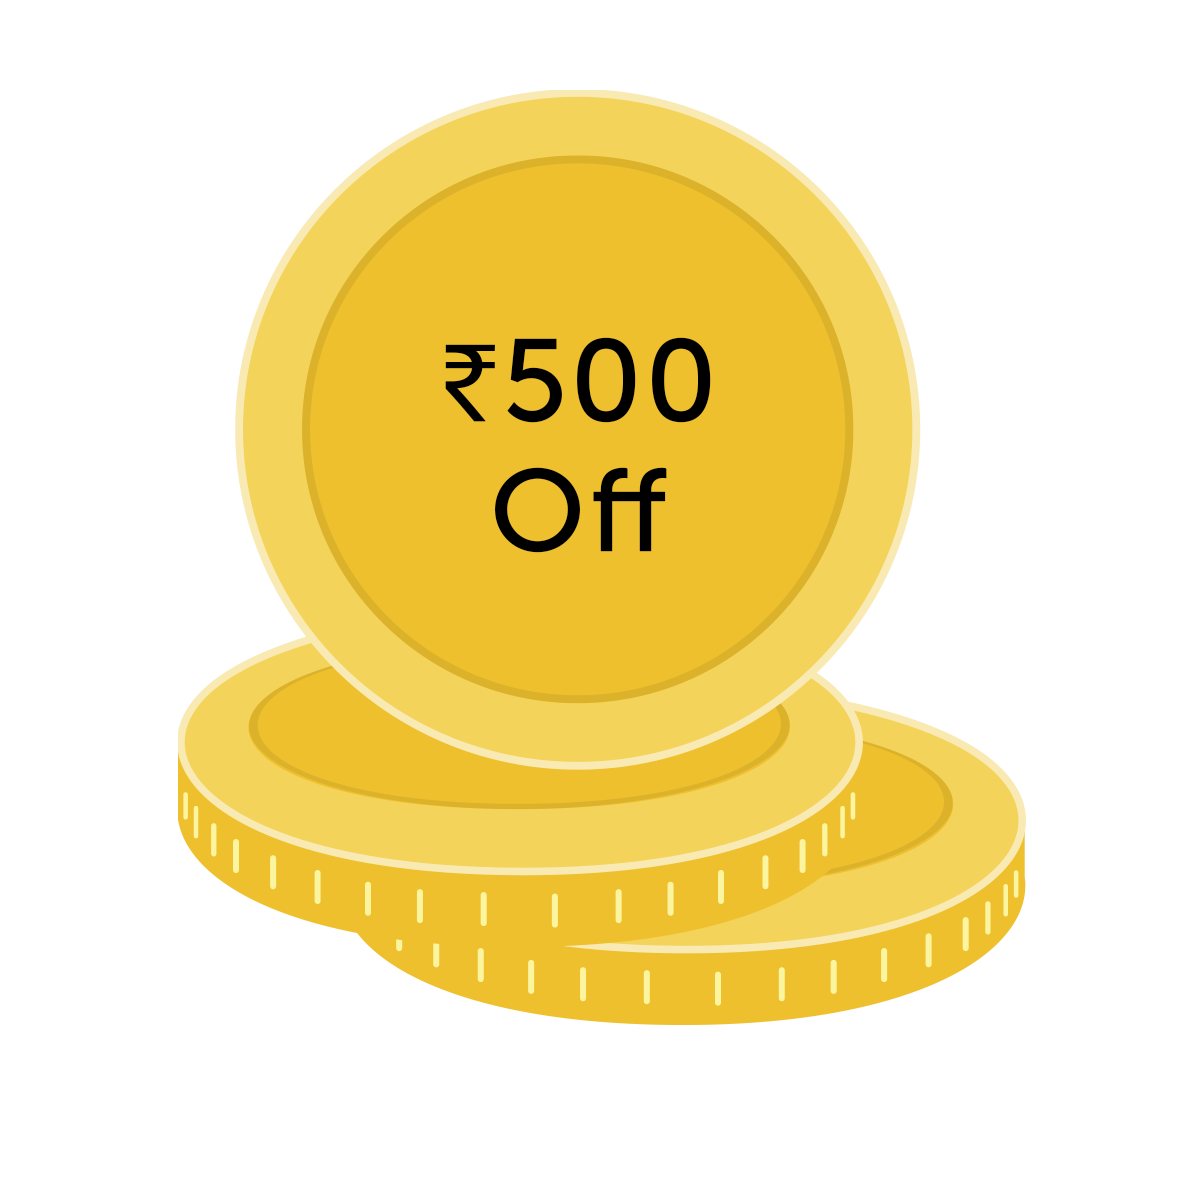 ₹500 off coupon for 5000 Coins